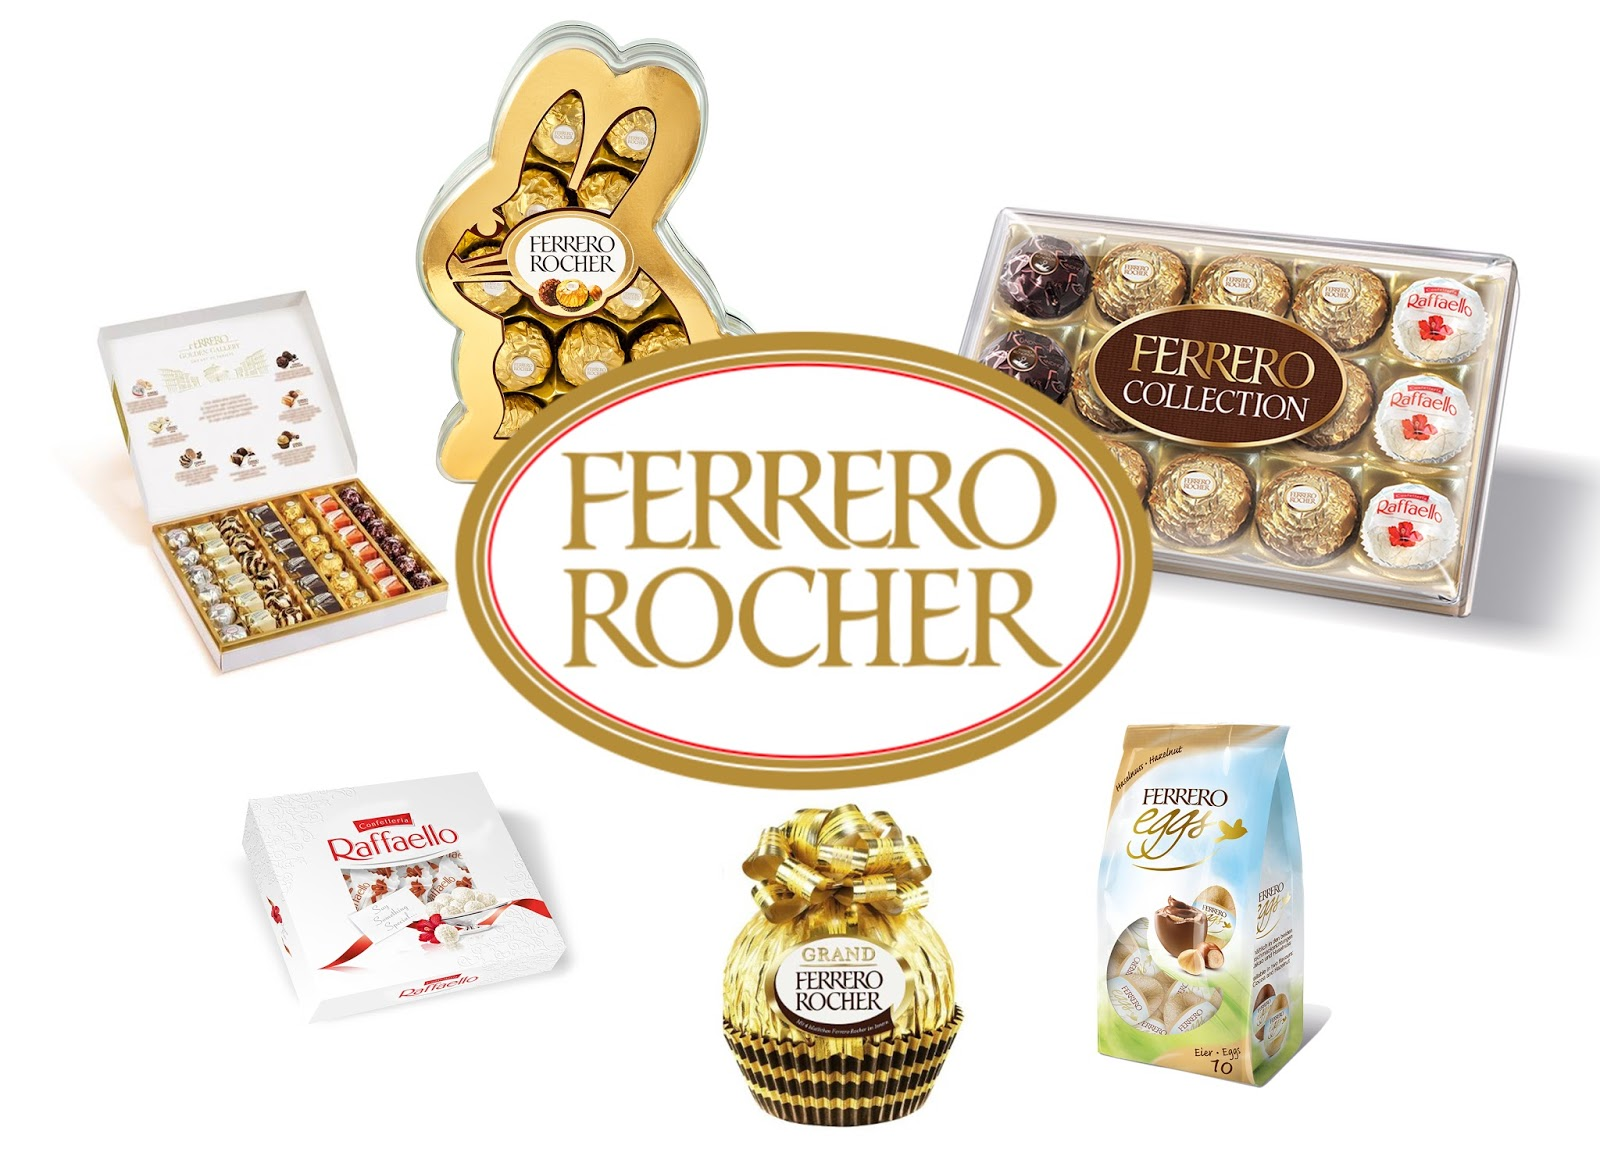 YES, WE ARE SPOILING YOU [FERRERO ROCHER EASTER CHOCOLATE COMPETITION]